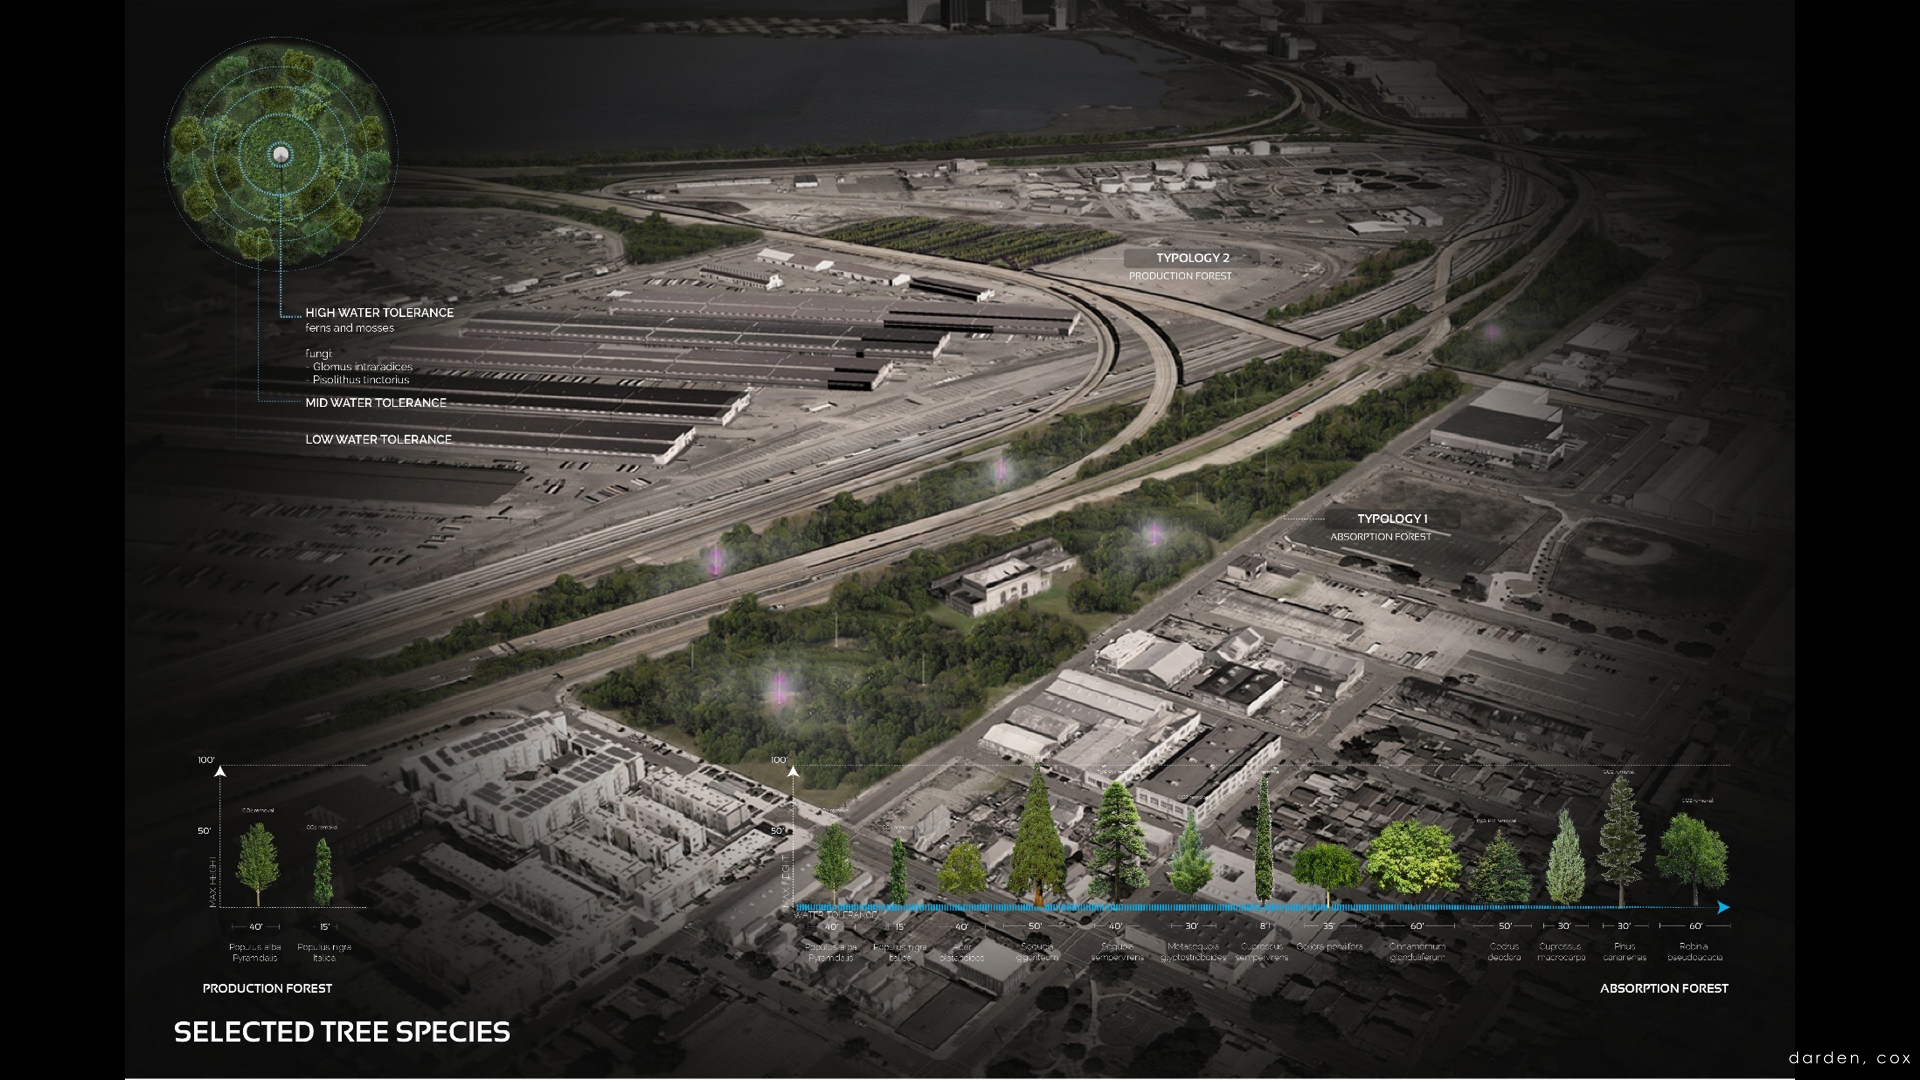 A metabolic forest -- narrow strips of disused land planted with vegetation and water misters -- would act as a filter against air pollution floating over West Oakland from nearby freeways. Image: Prentiss Darden, Silvia Cox